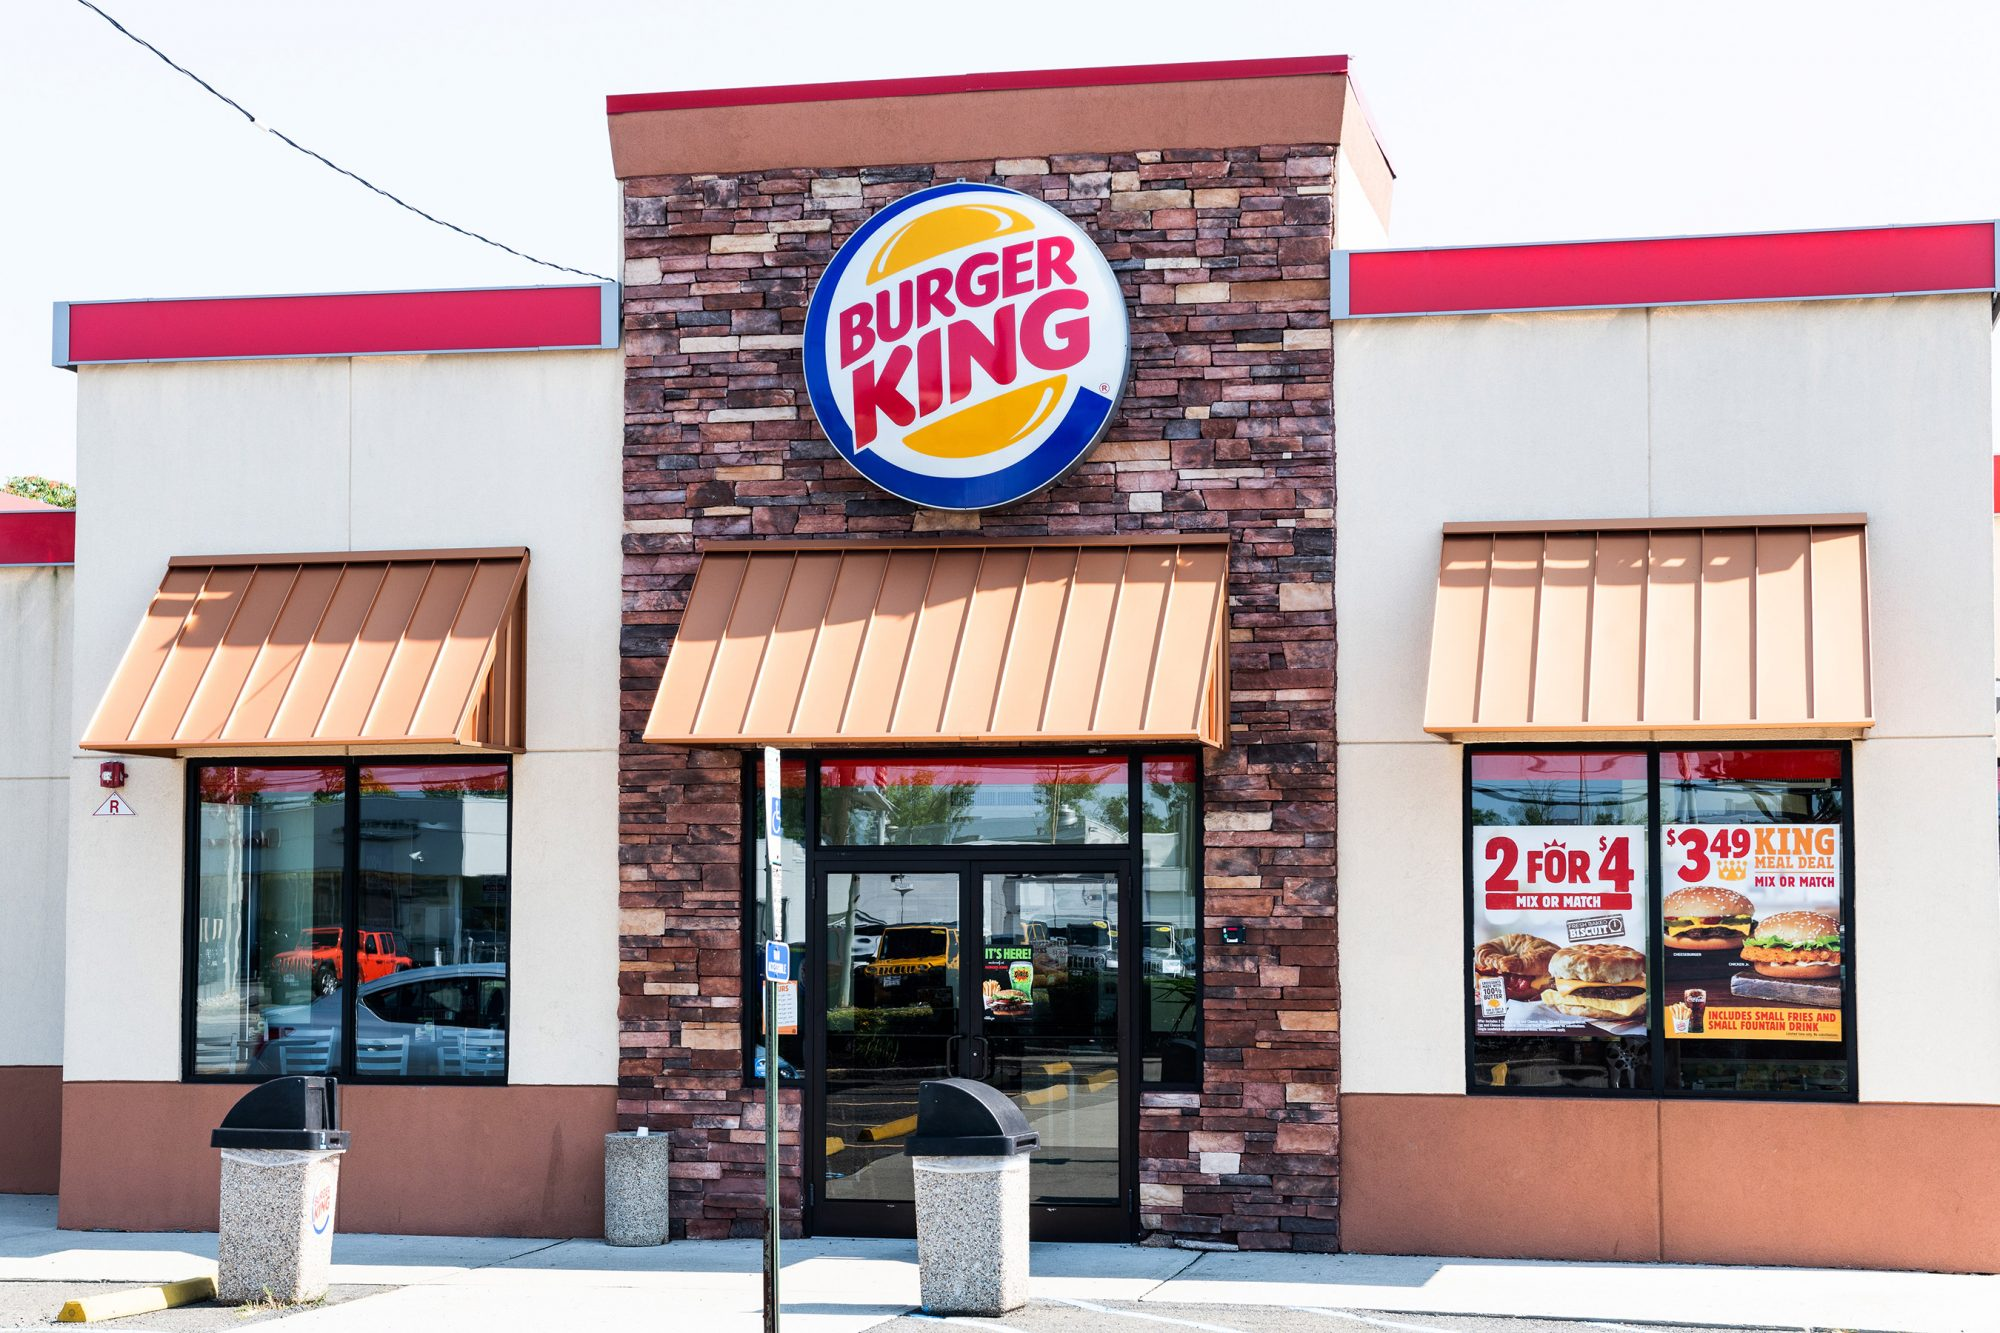 Burger King restaurant in South Hackensack, New Jersey